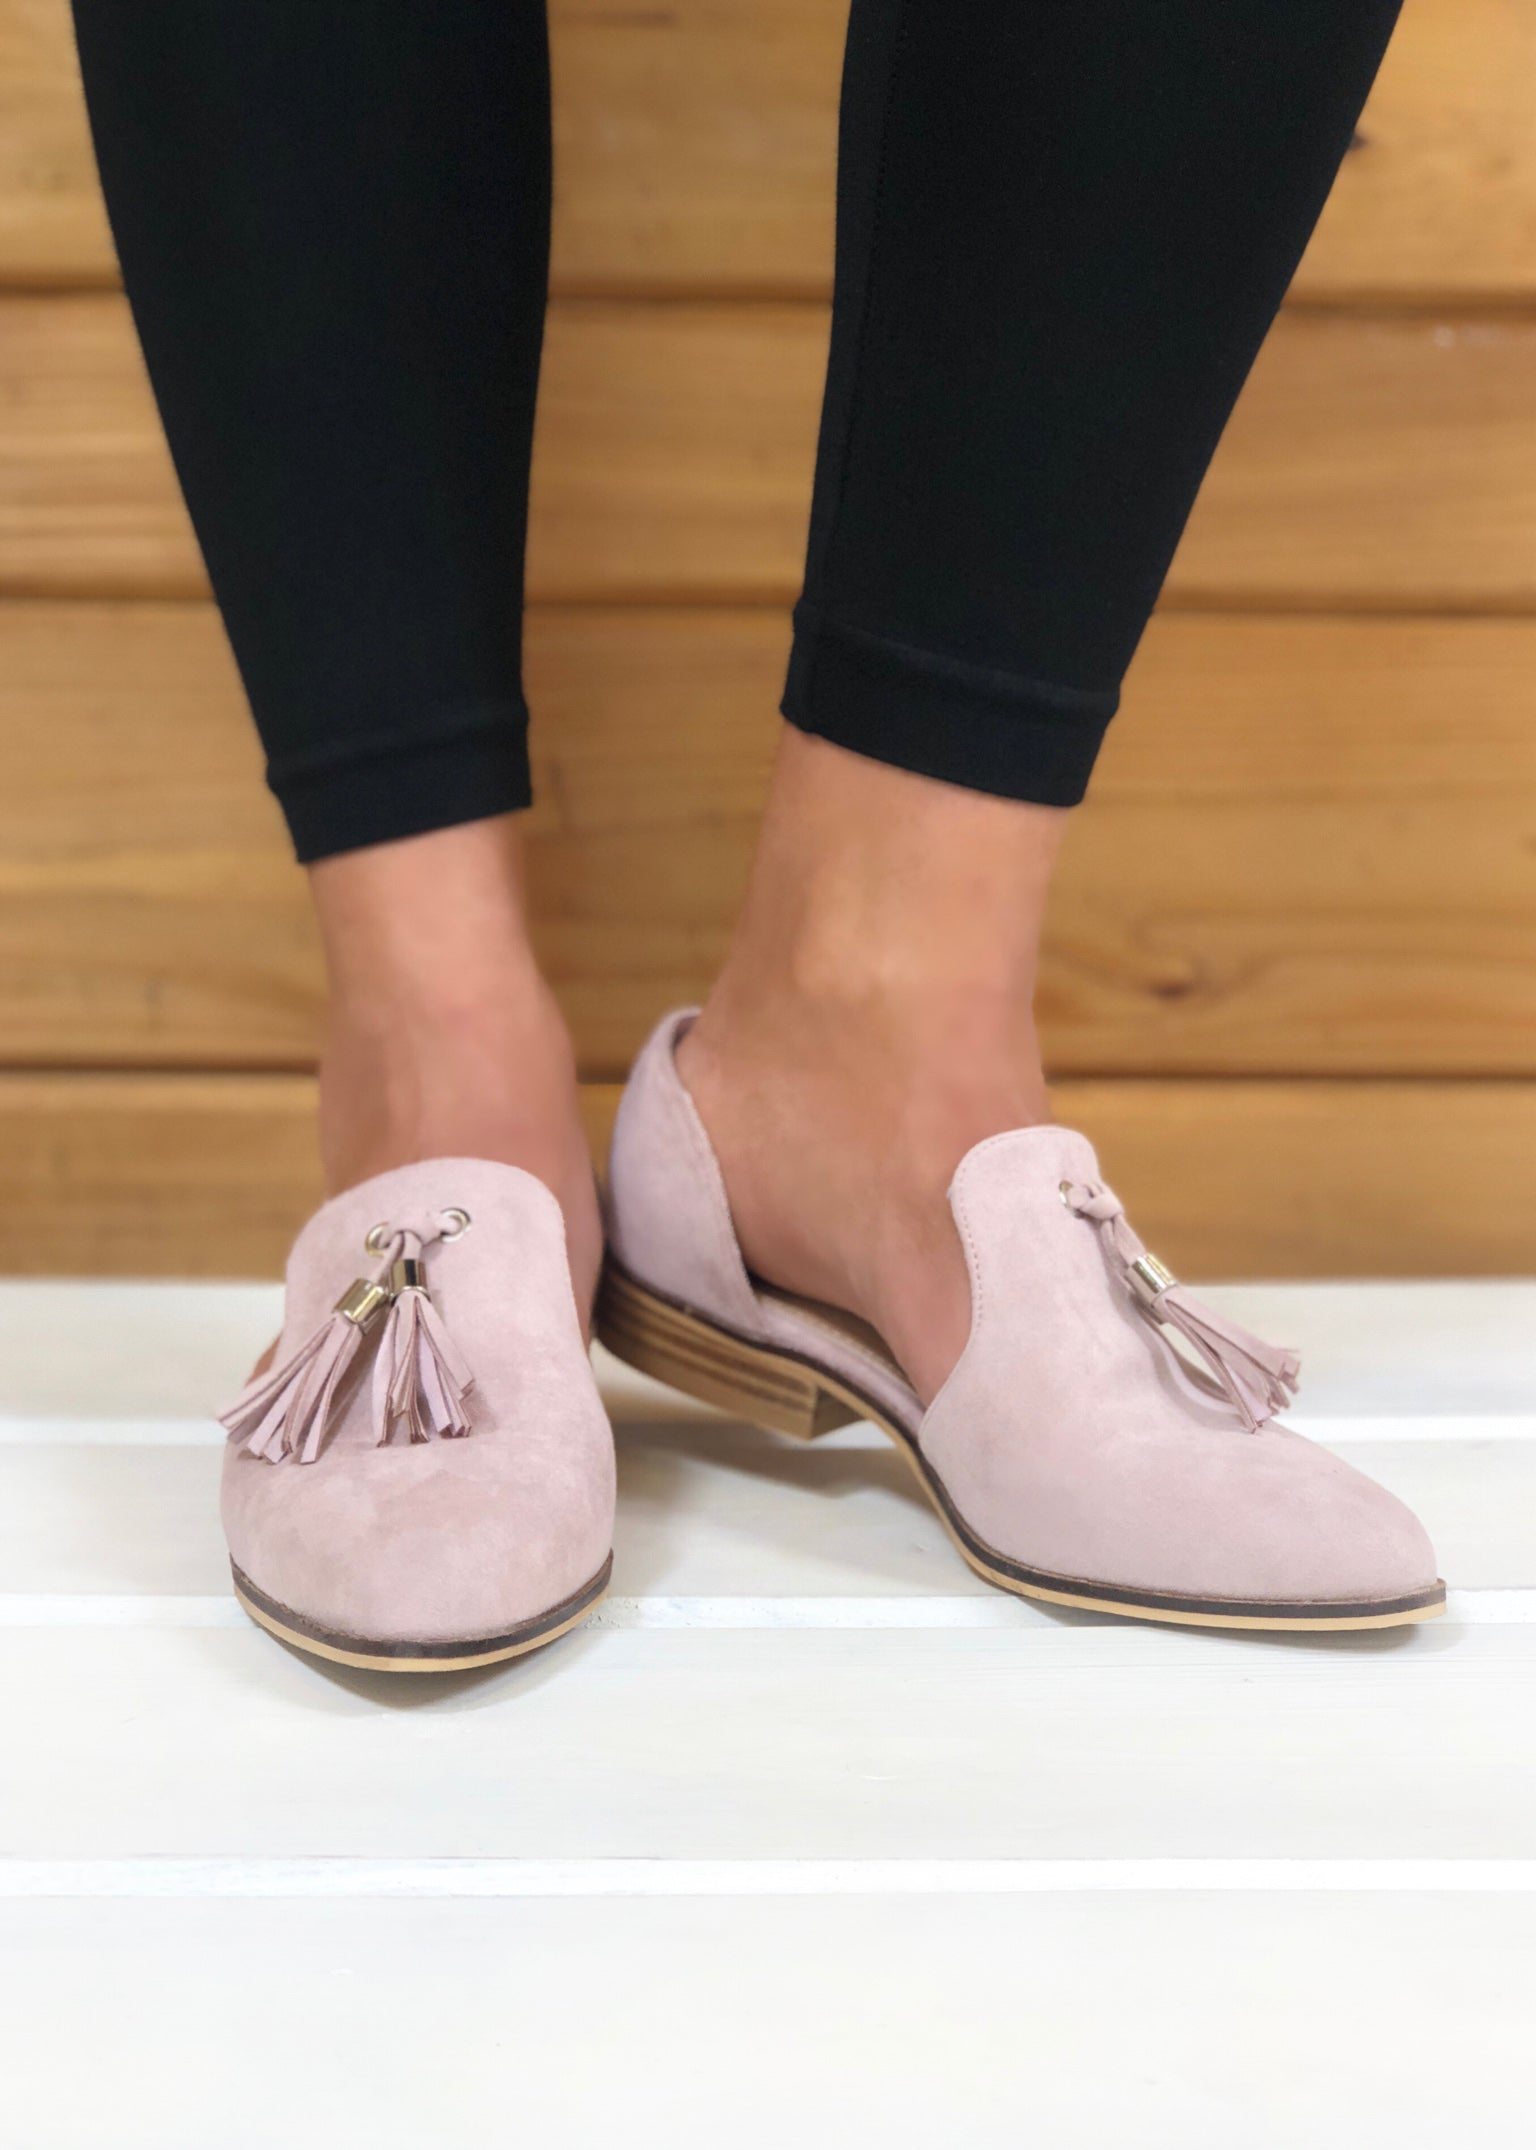 Eyes on You Tassel Loafers - Blush Pink